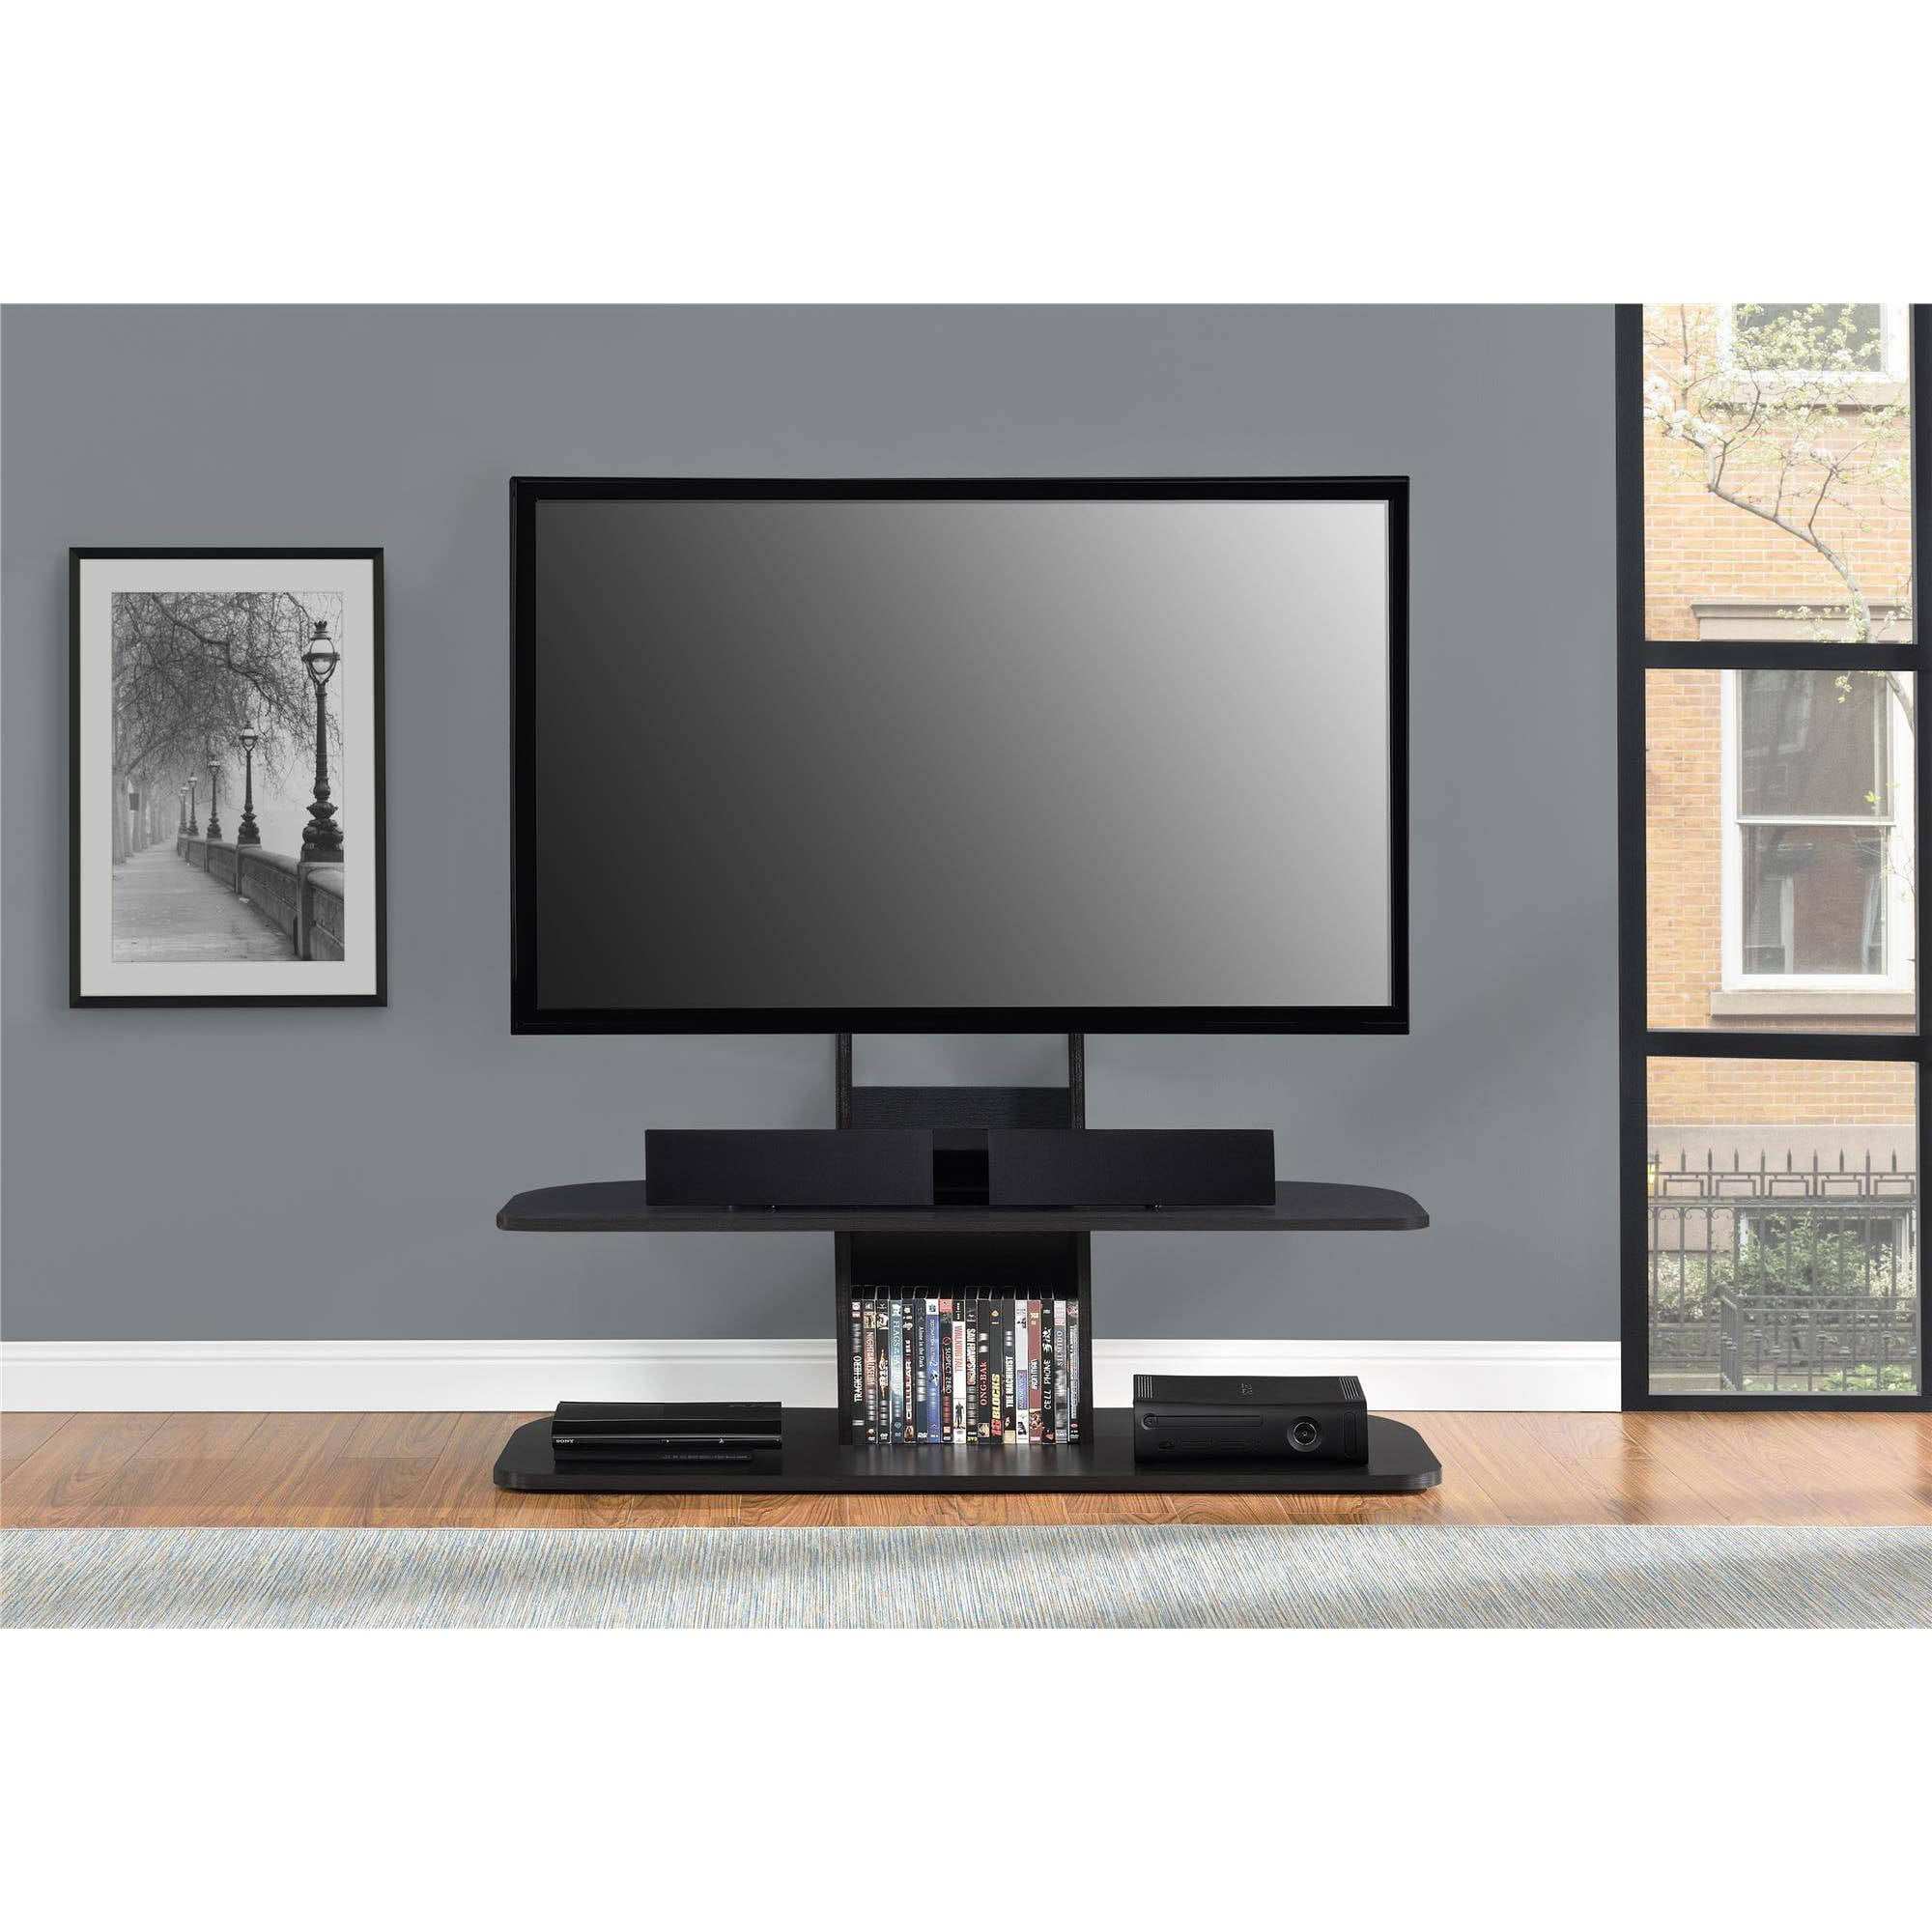 Tv Tables Big Tv Stand: Ameriwood Home Galaxy TV Stand With Mount For TVs Up To 65